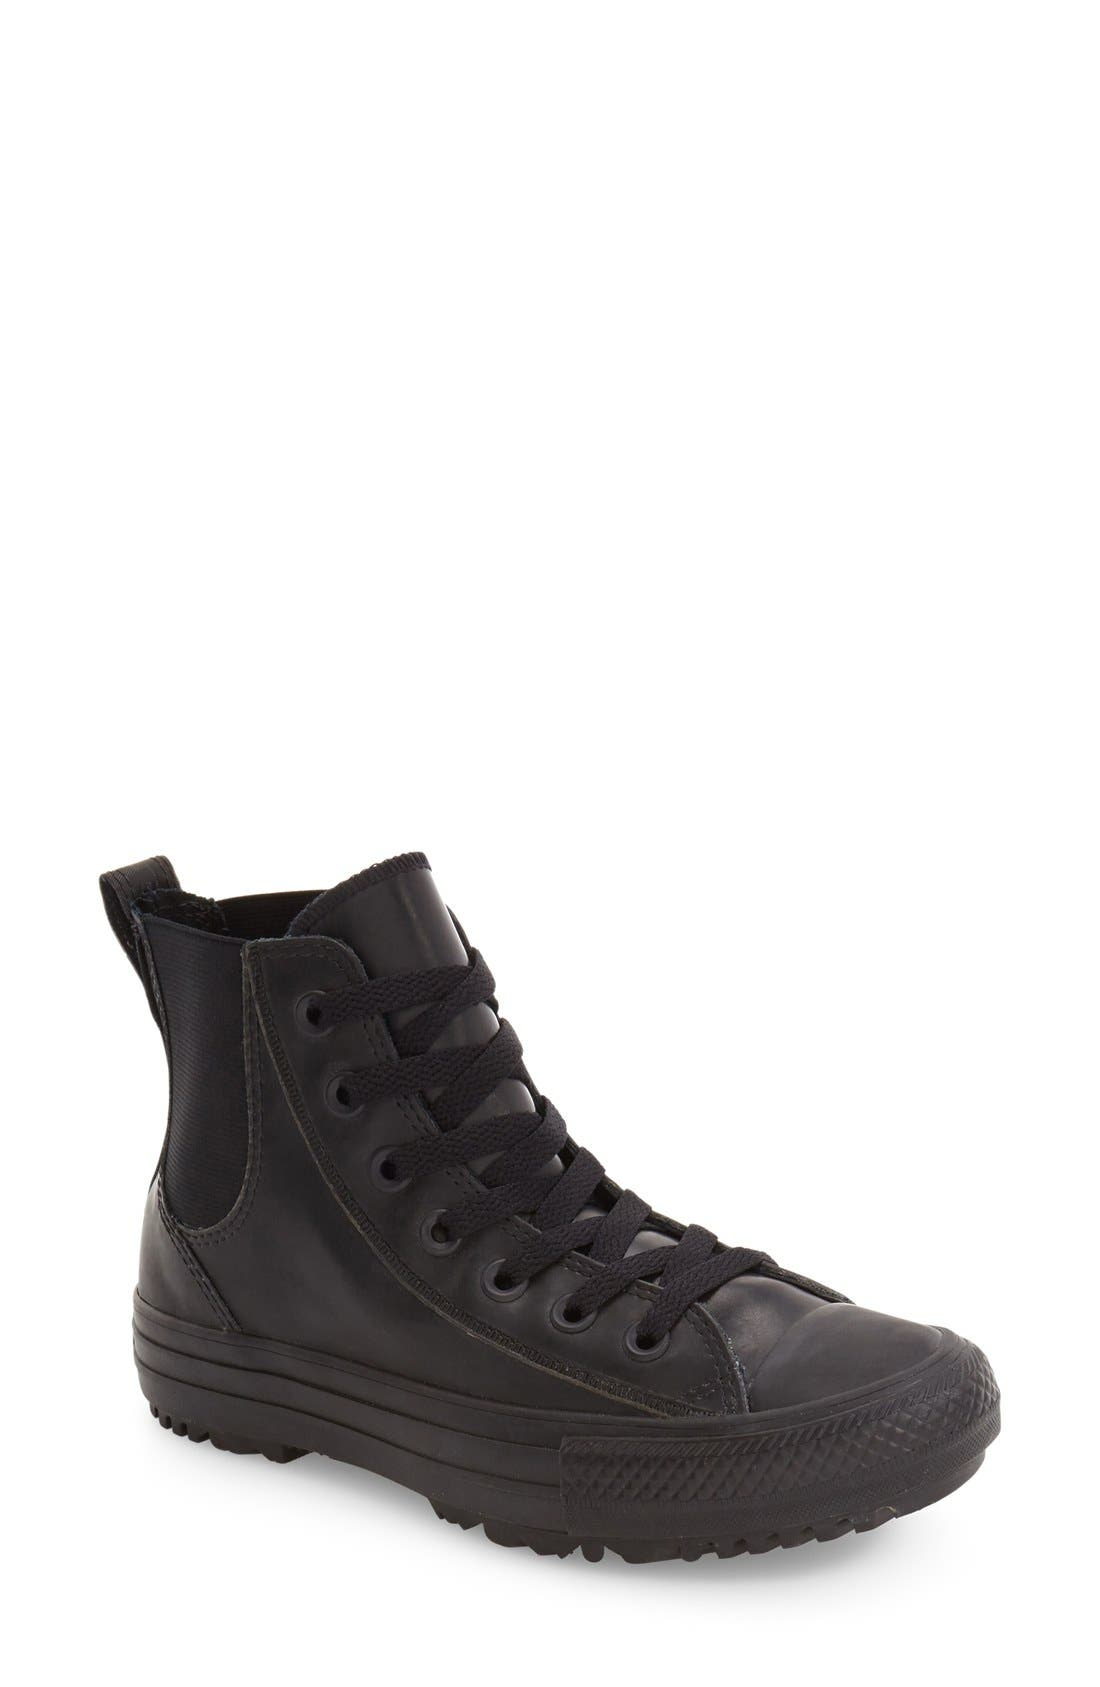 Alternate Image 1 Selected - Converse Chuck Taylor® All Star® Chelsee Translucent Water Repellent High Top Sneaker (Women)